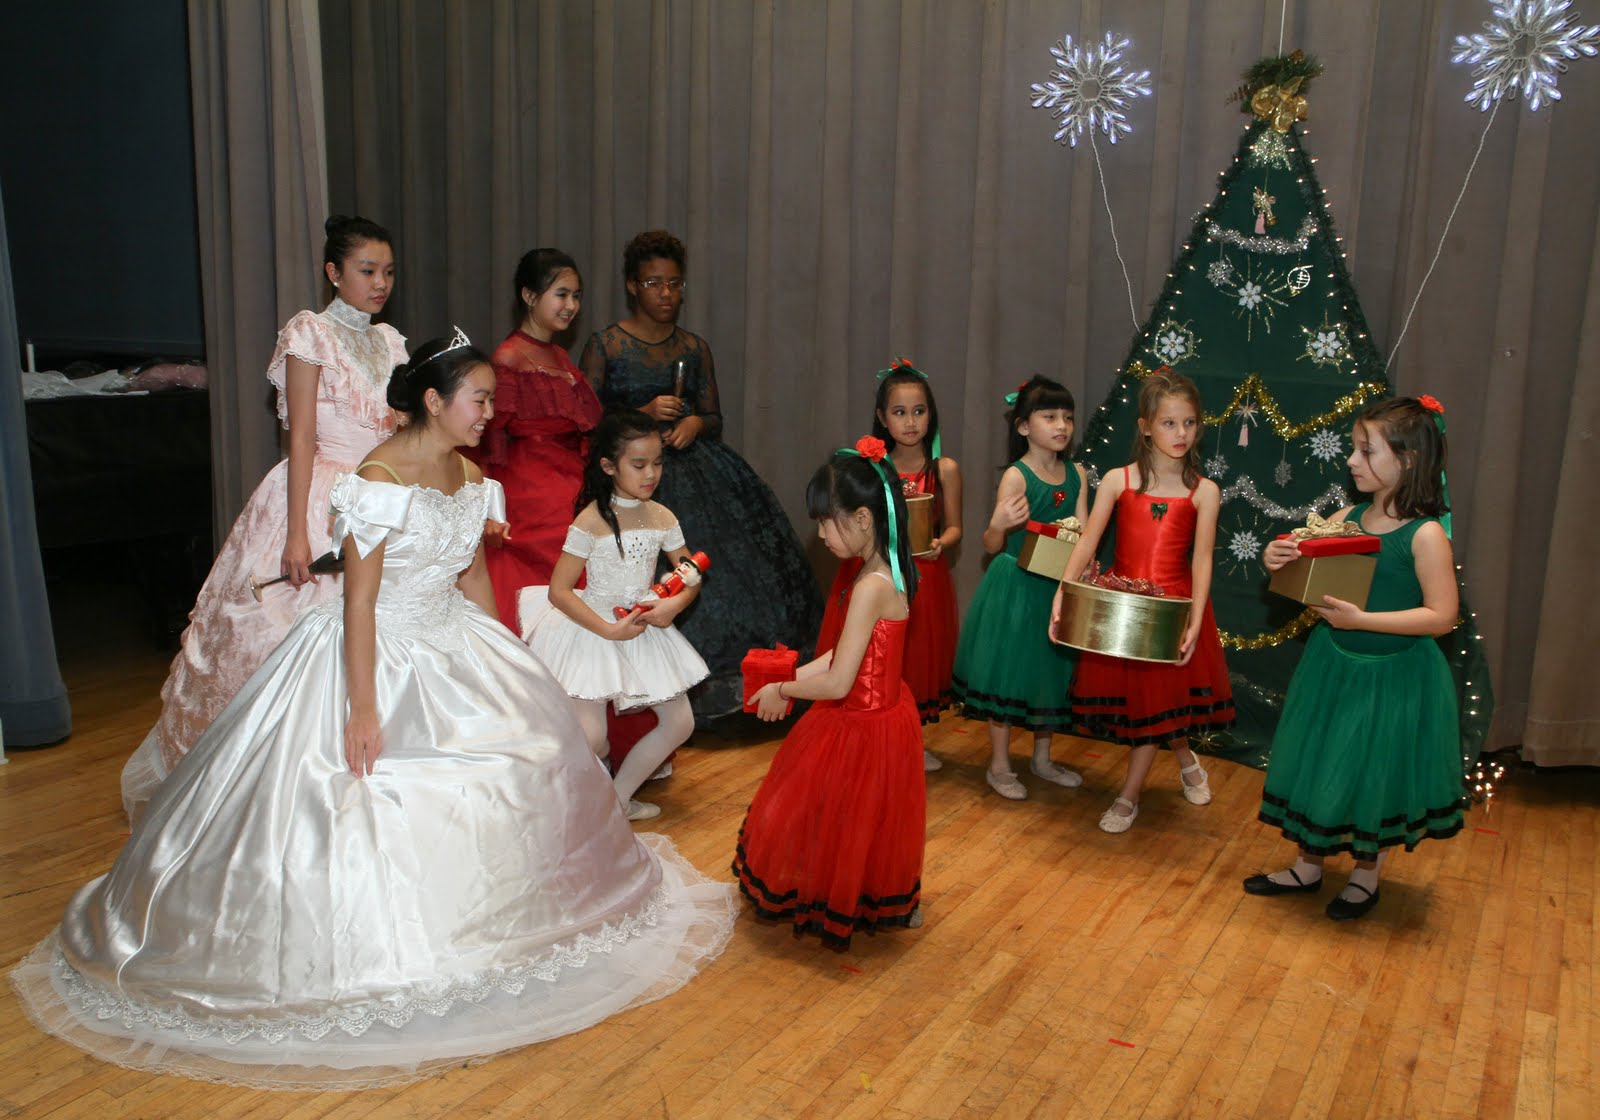 Settlement music school a holiday tradition with beautiful costumes a heartwarming story and talented young performers from across the philadelphia region its a great opportunity to see how much solutioingenieria Images